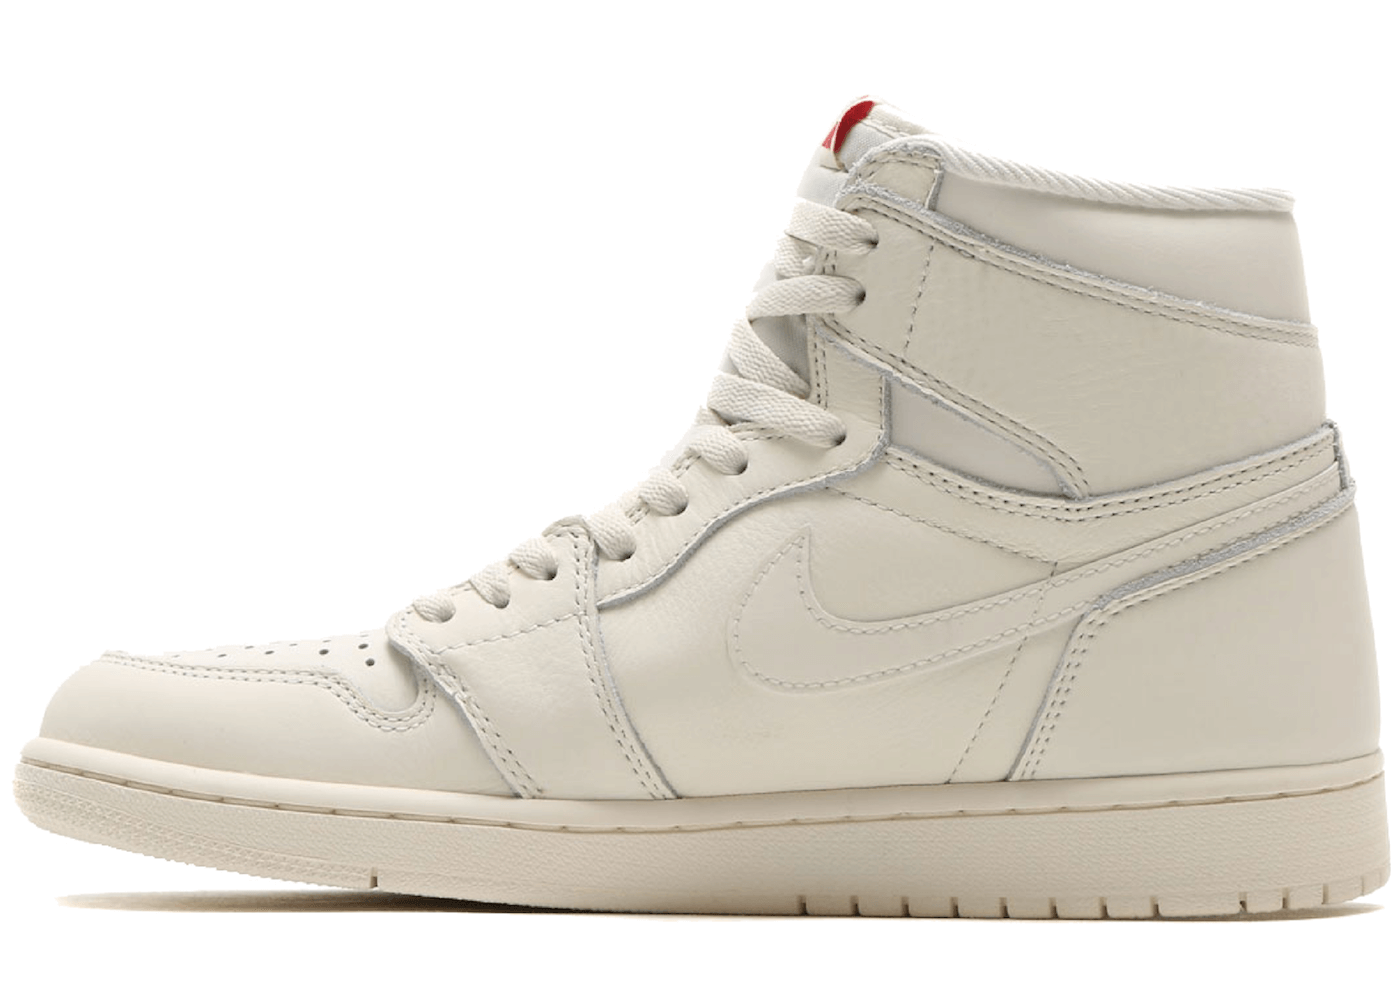 Jordan 1 Retro High OG Sailの写真